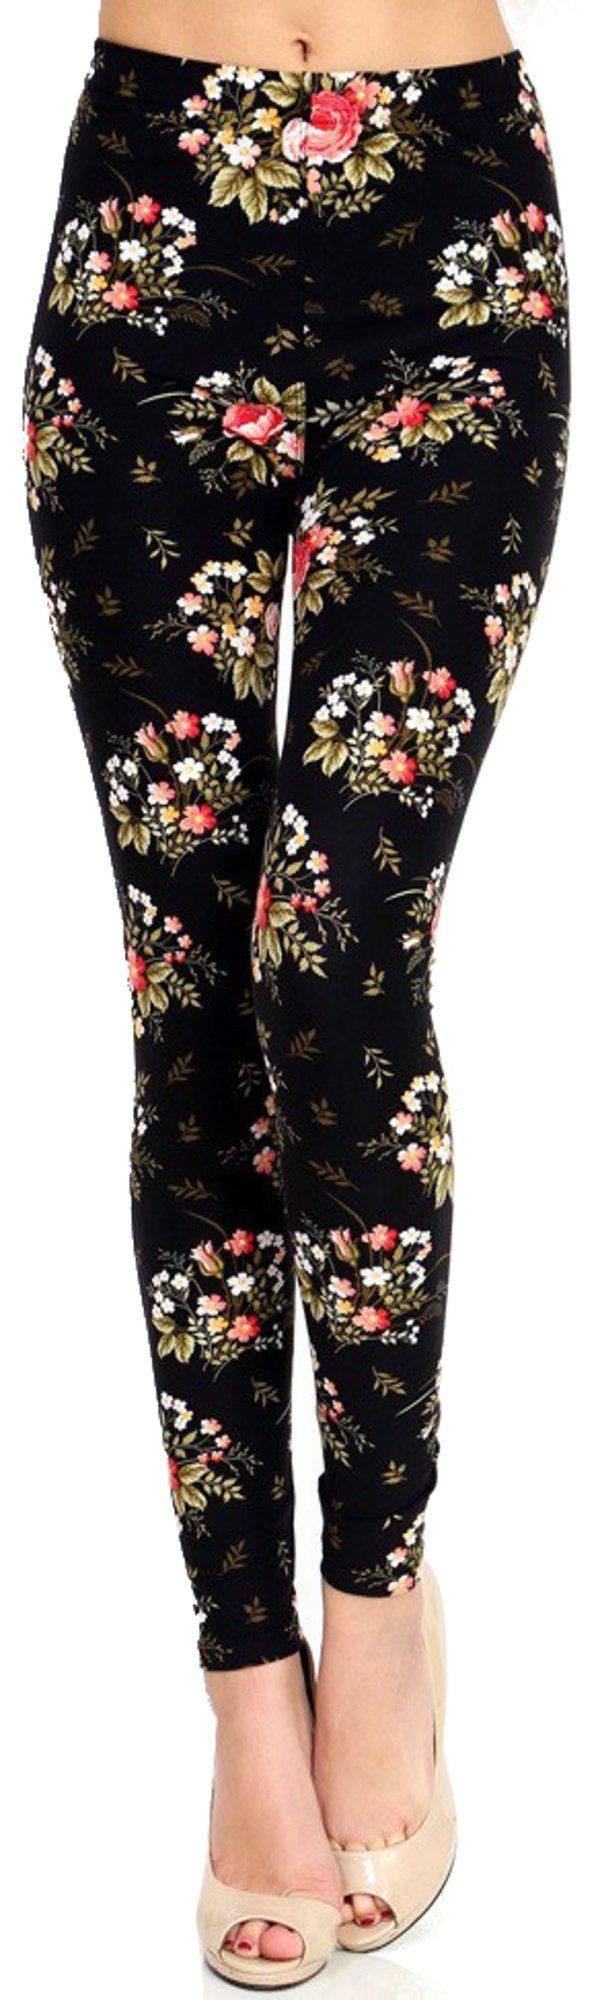 Lush Moda Extra Soft Leggings with Designs- Variety of Prints - Black Floral 2